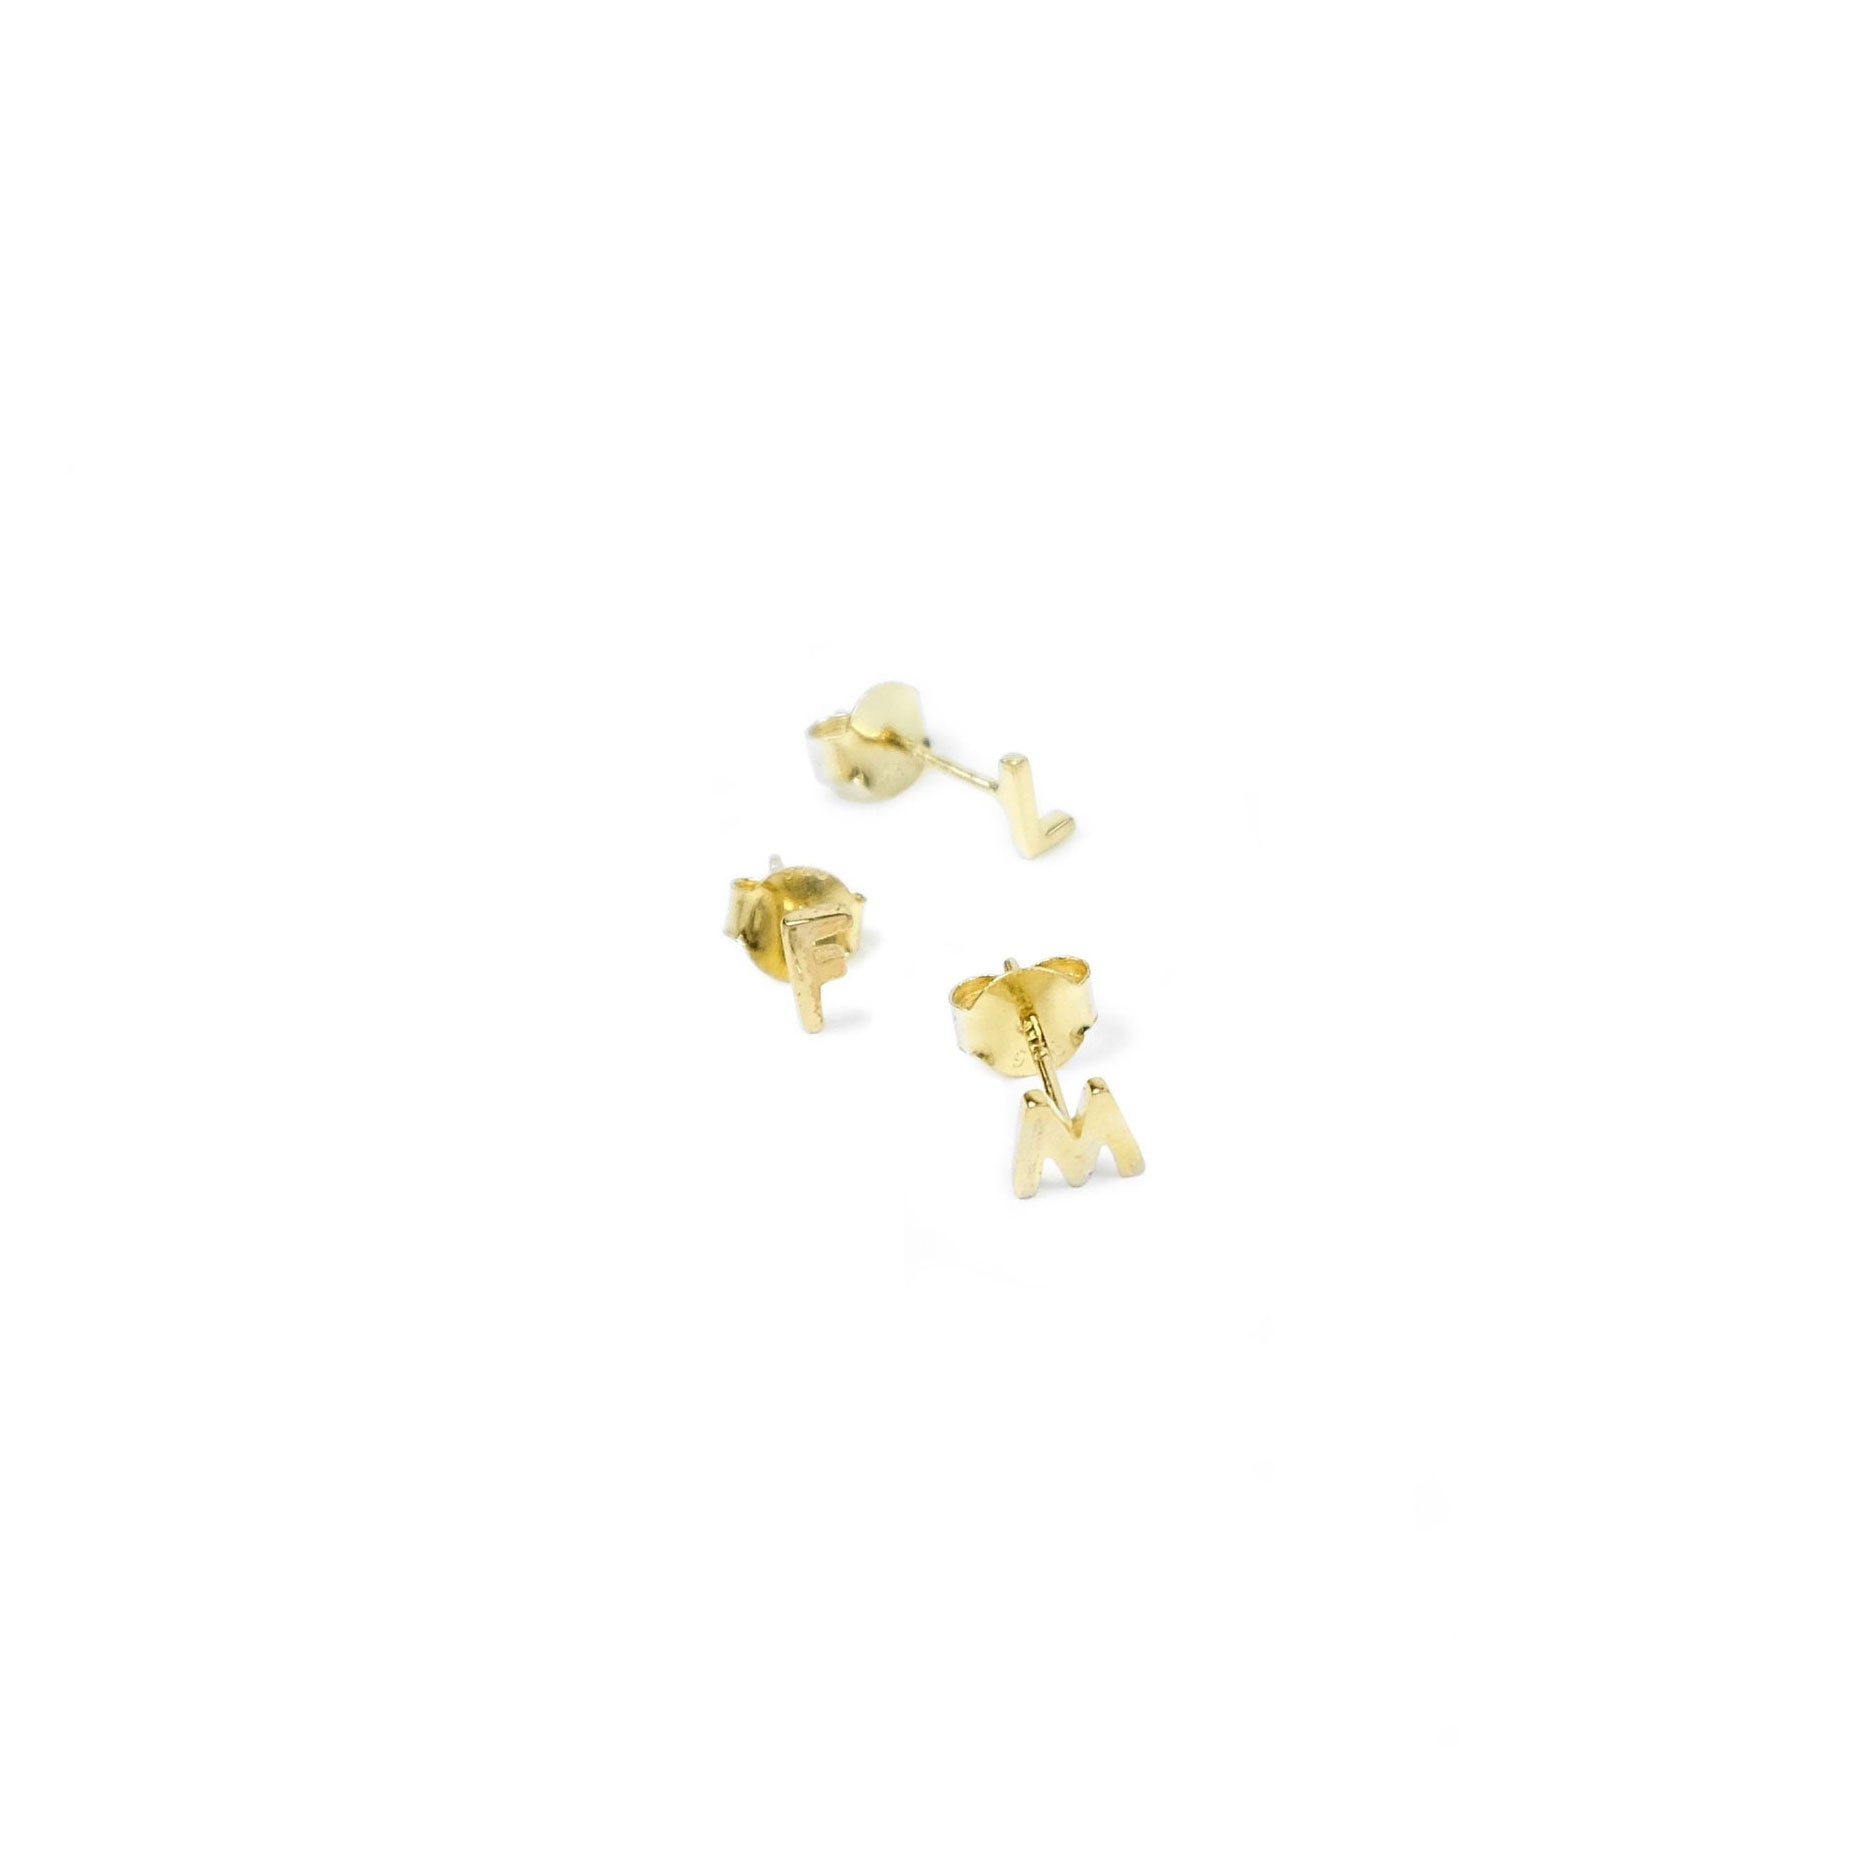 Sophie - Little Letter Earrings - Gold